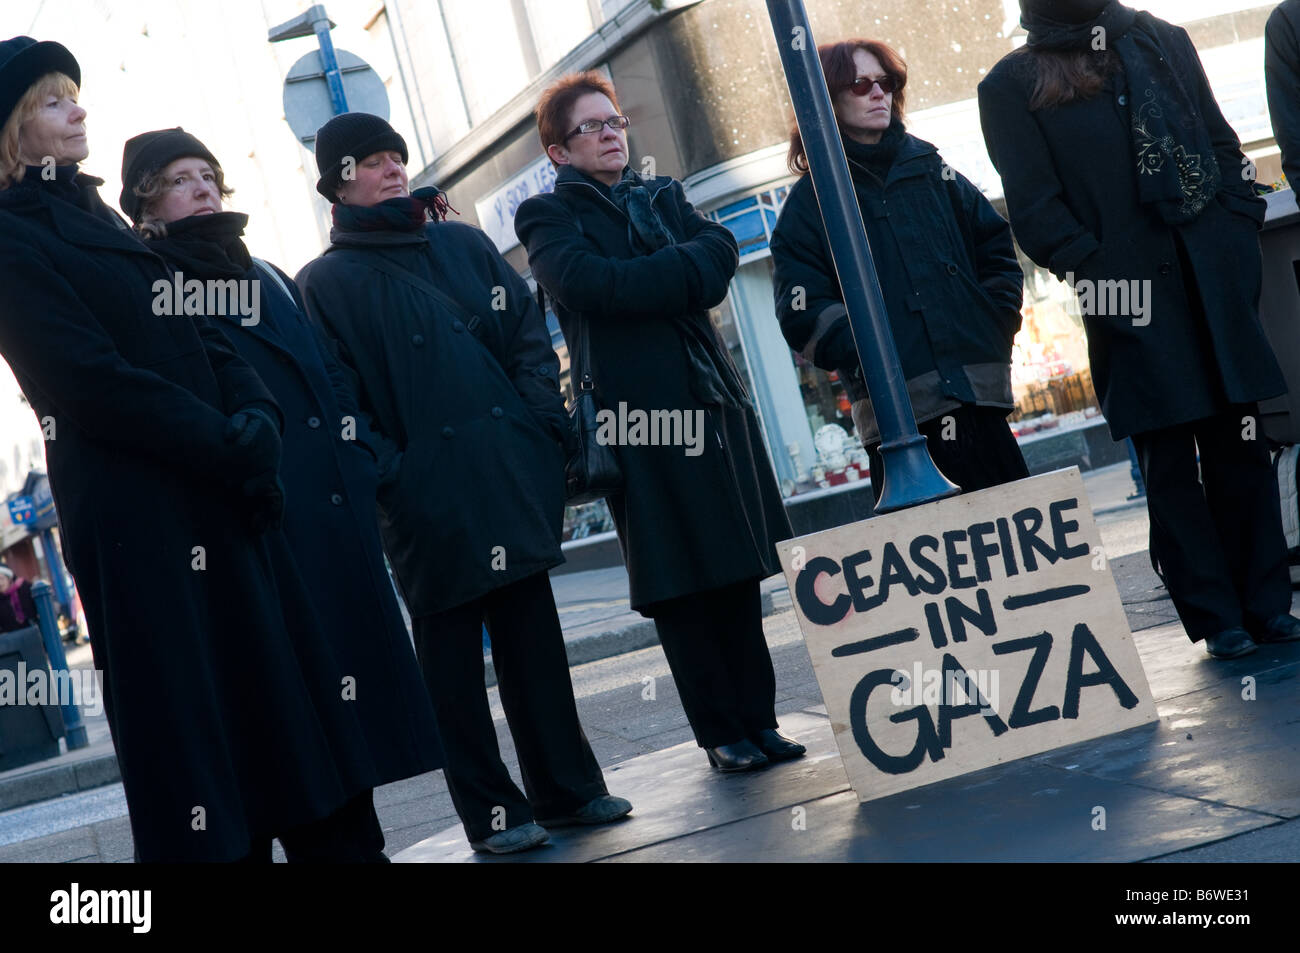 A group of concerned women dressed in black holding a public vigil  in Aberystwyth Wales UK calling for ceasefire - Stock Image